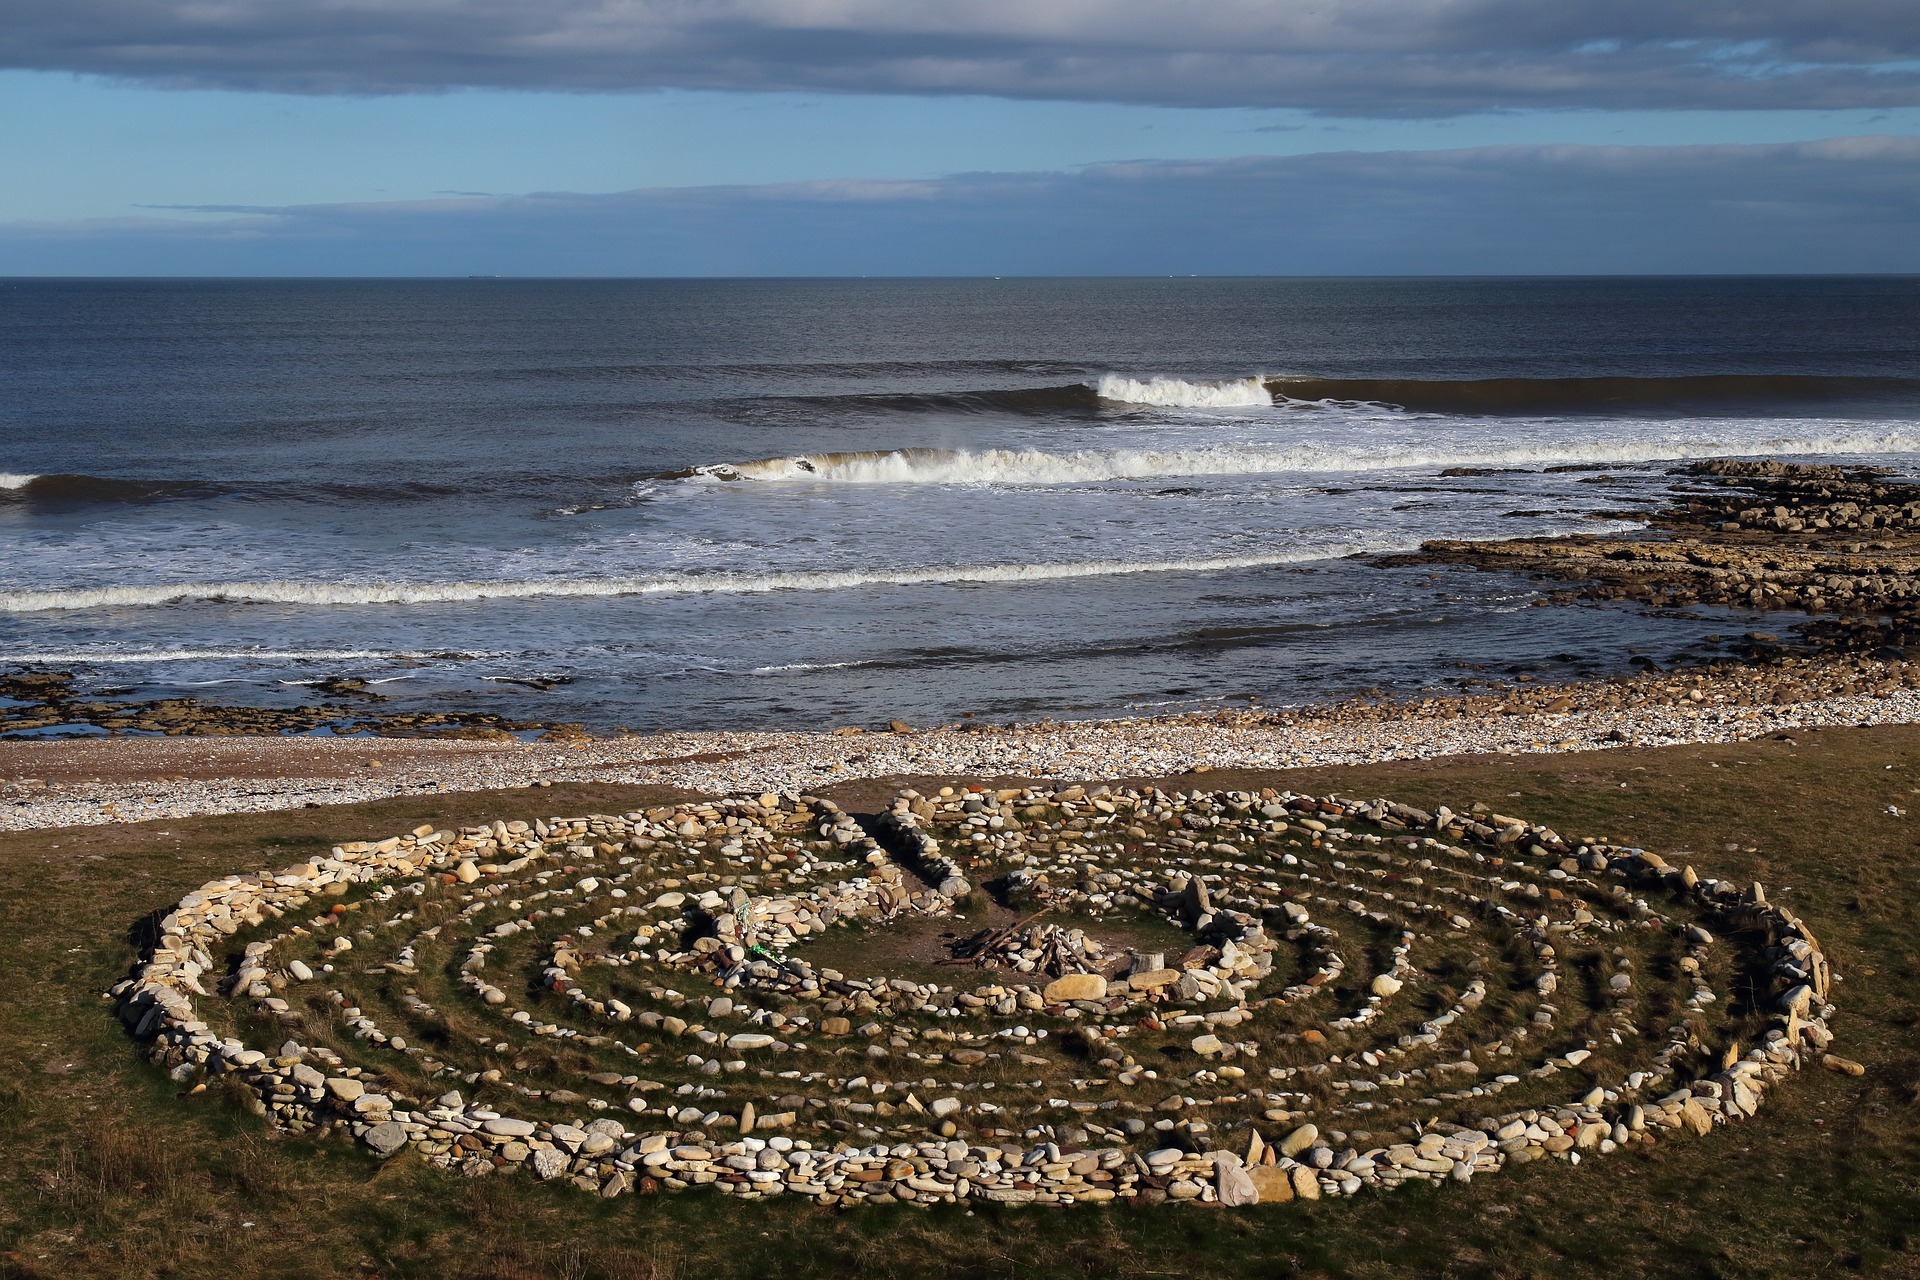 ocean view labyrinth waves tranquility